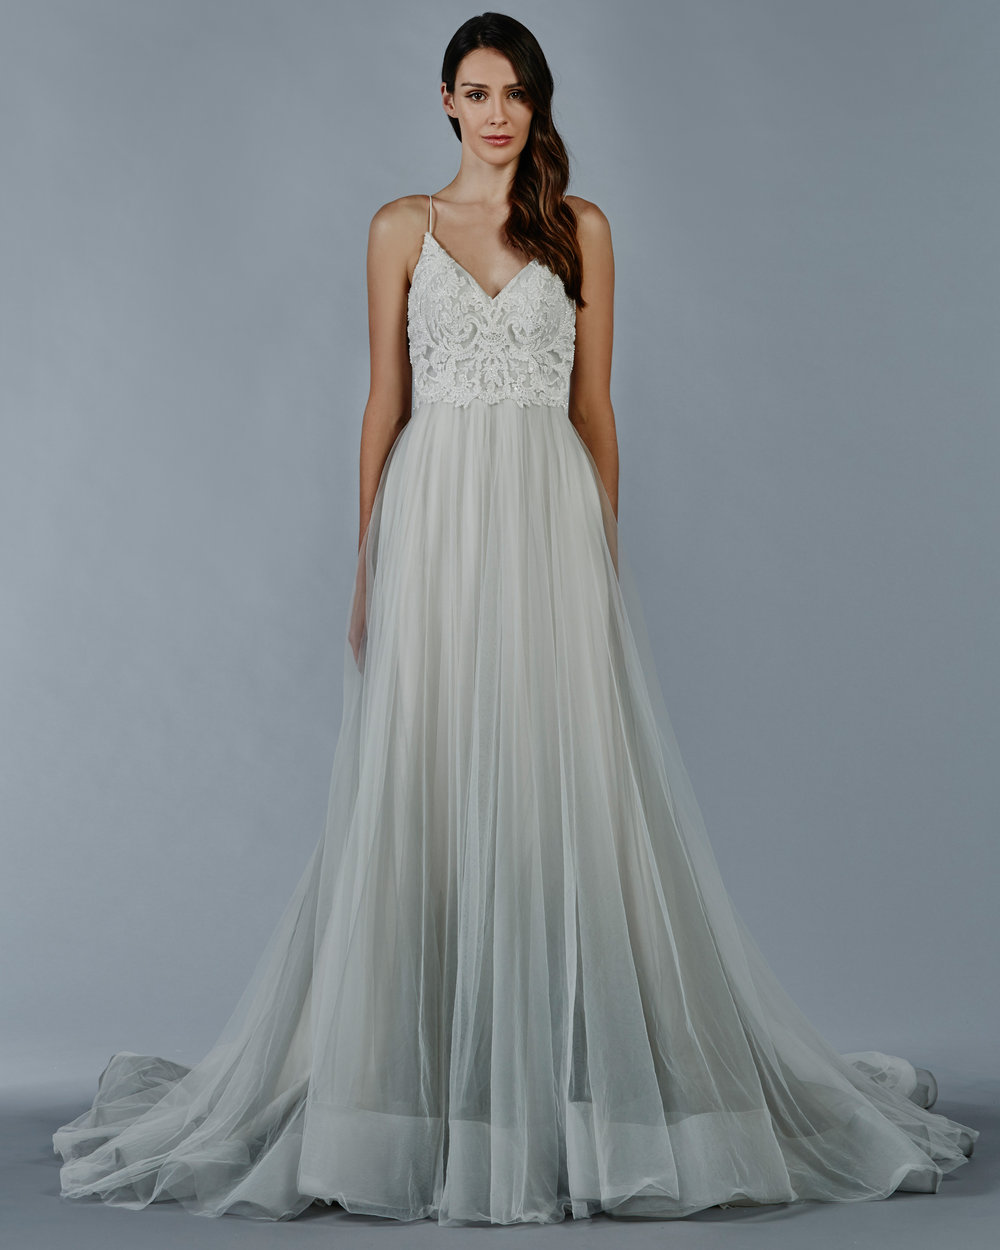 Magnificent Wedding Gowns Styles Body Types Pictures Inspiration ...